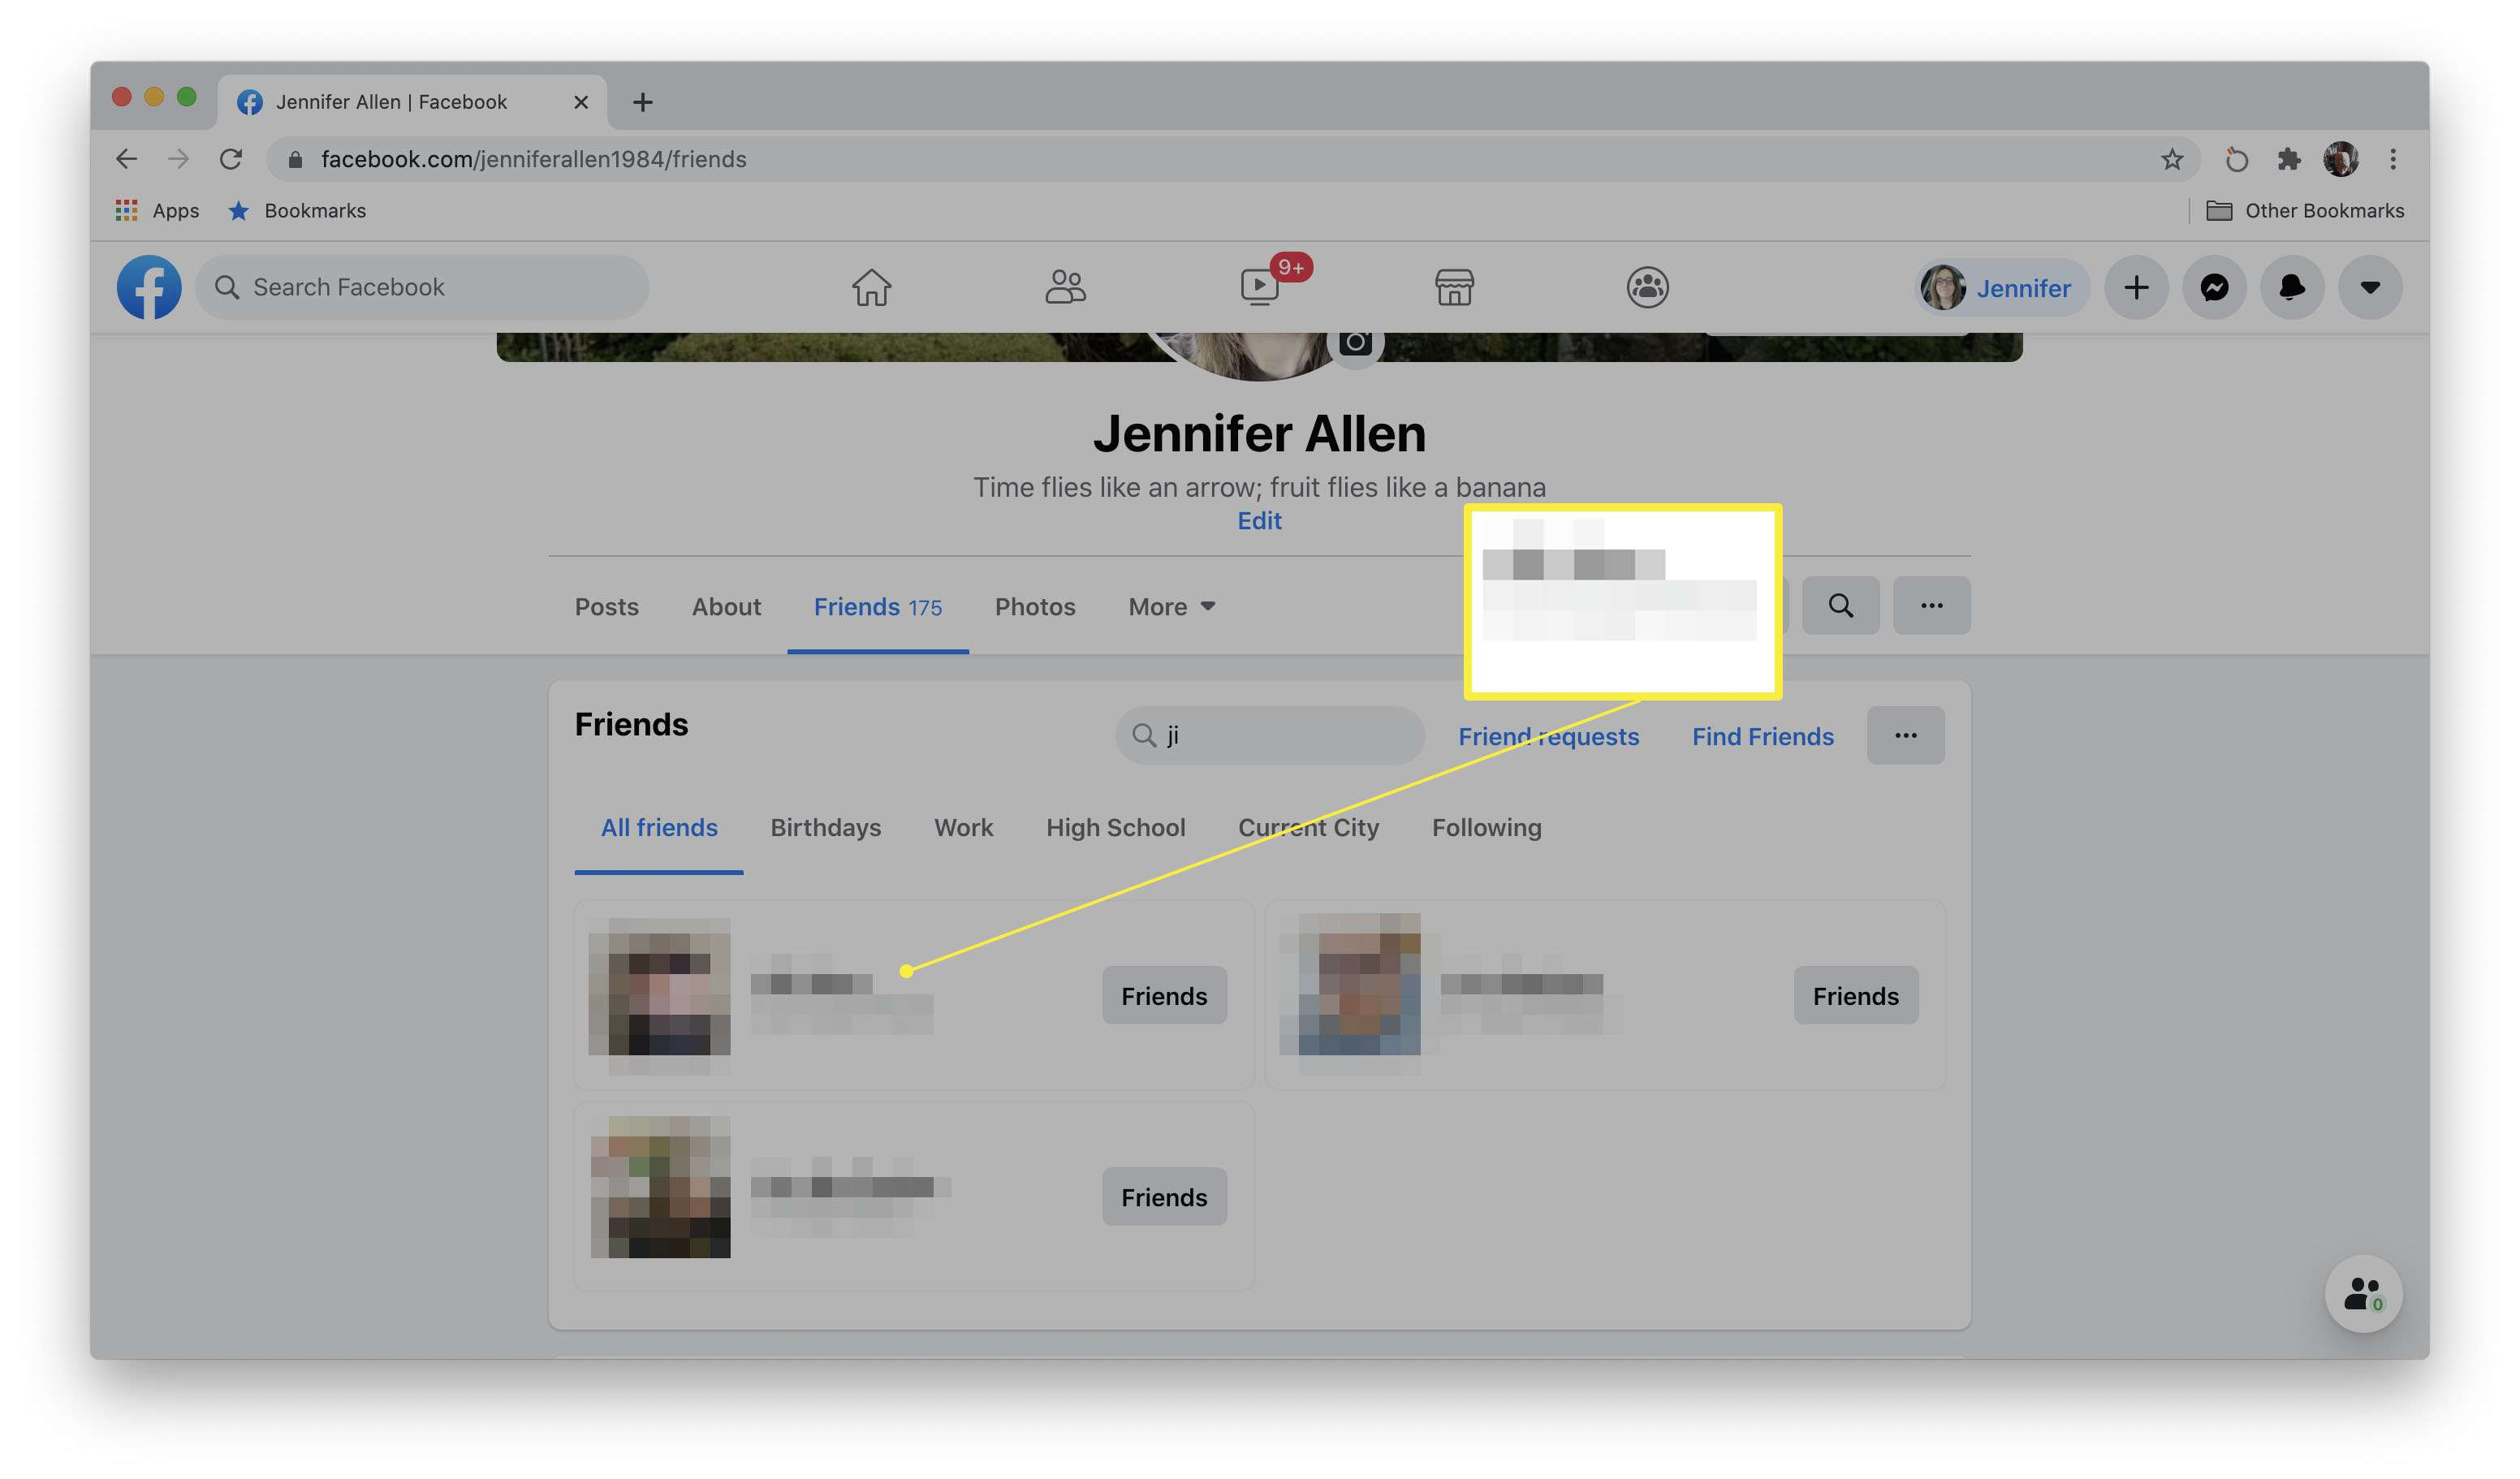 Facebook profile search results with a friend highlighted